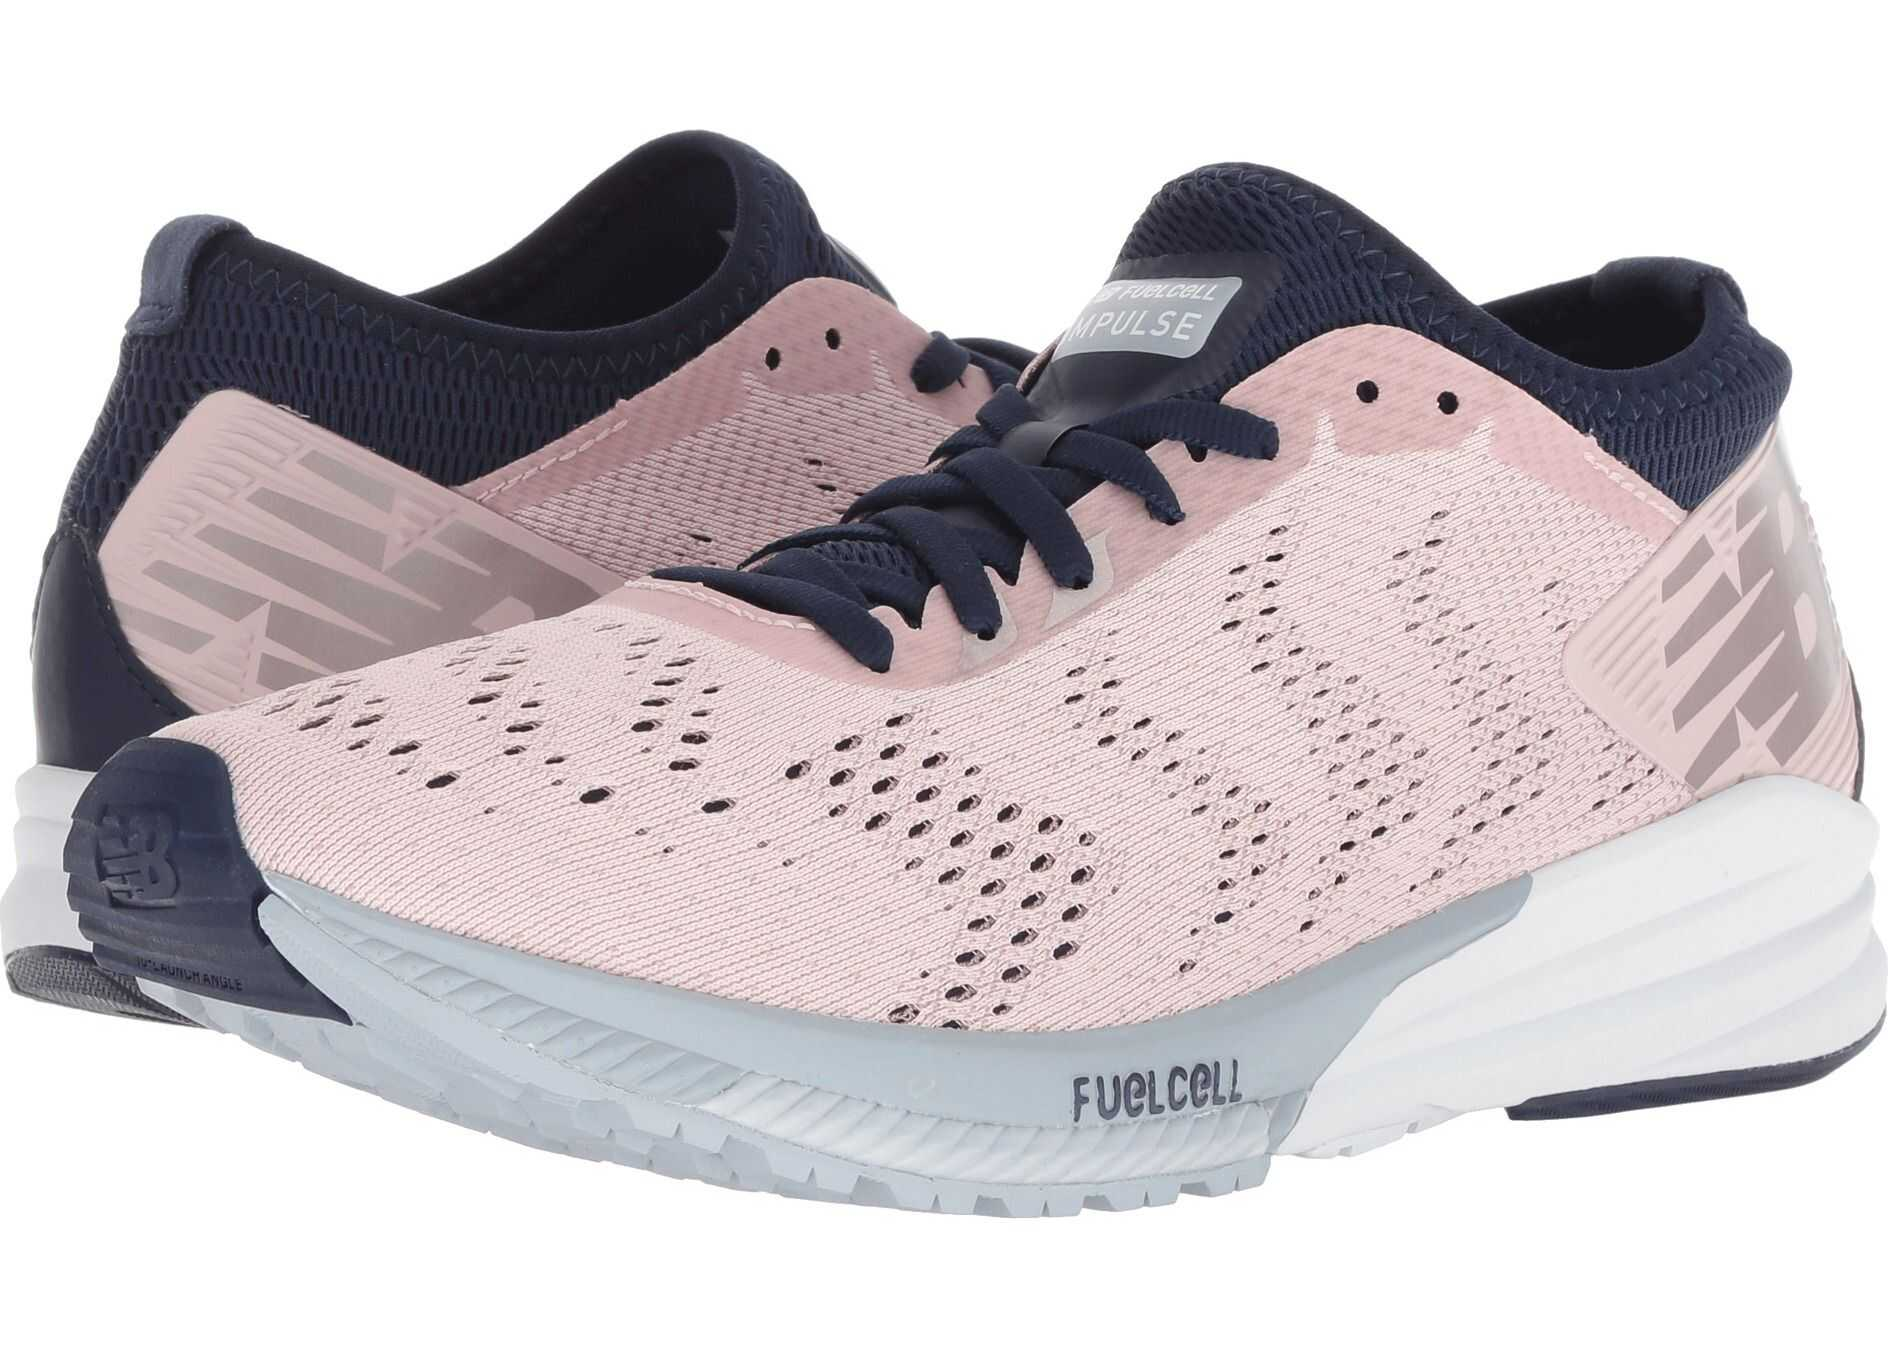 New Balance FuelCell Impulse Conch Shell/Light Cyclone